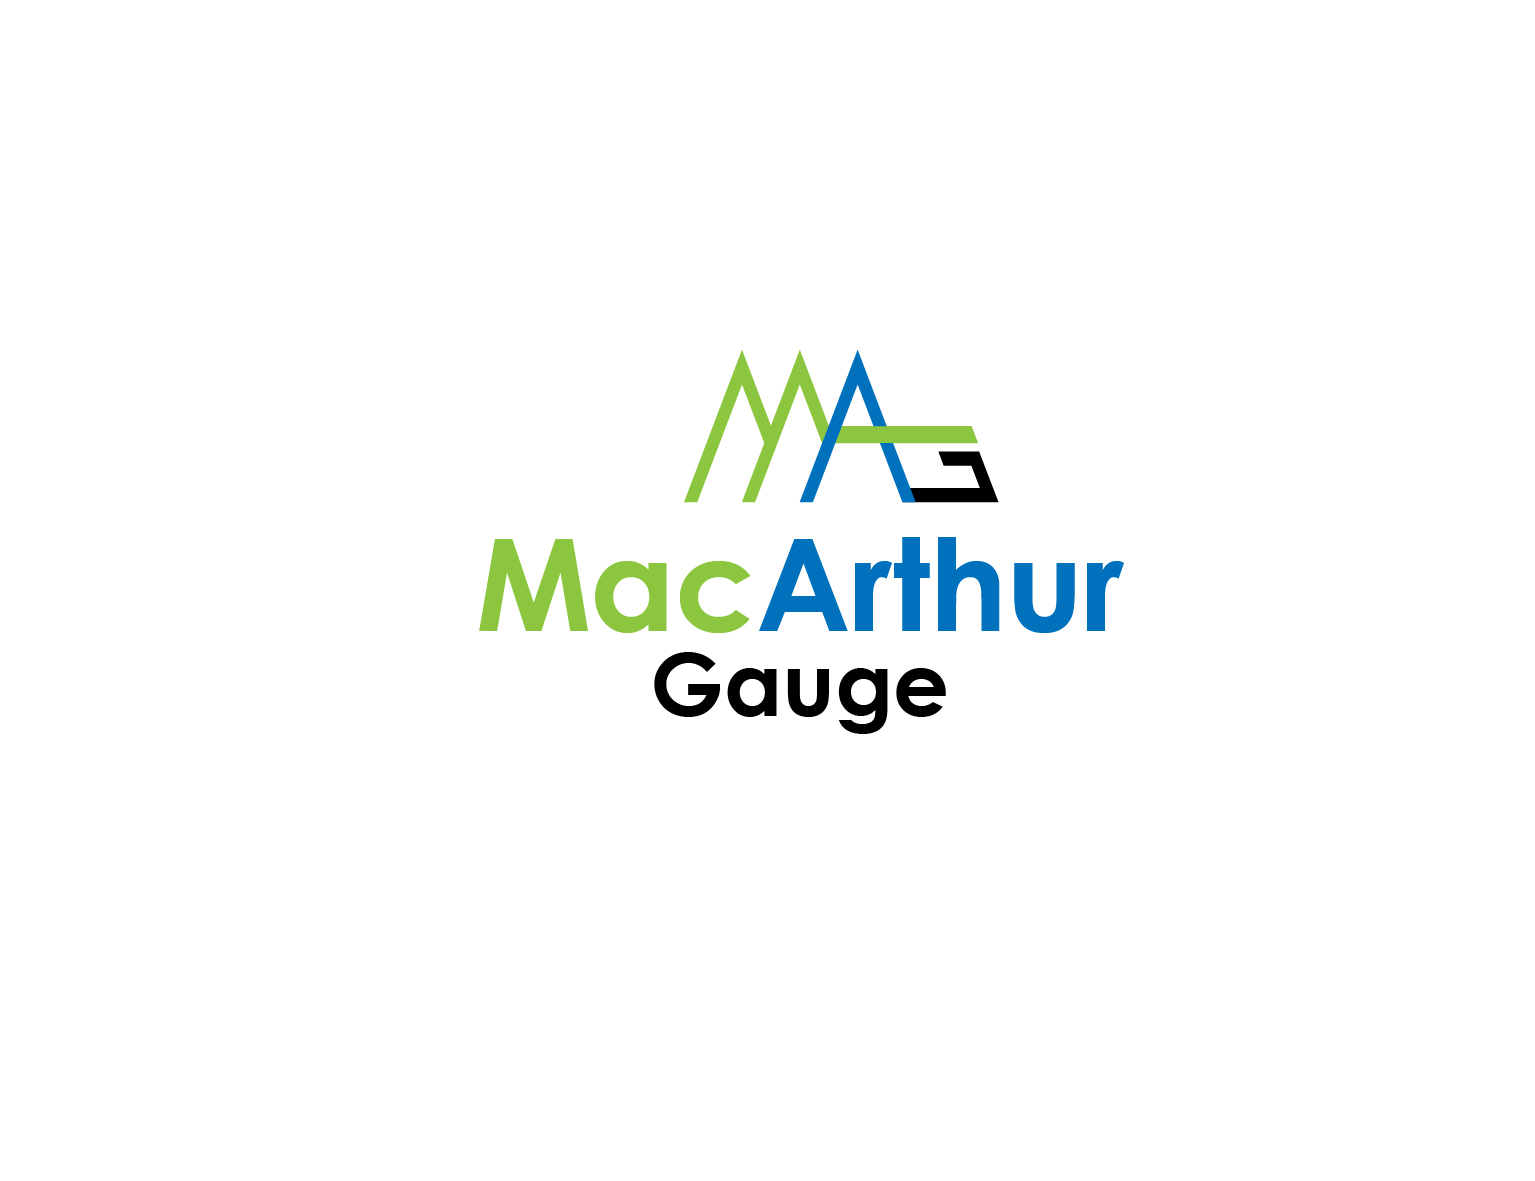 Logo Design by 3draw - Entry No. 182 in the Logo Design Contest Fun Logo Design for MacArthur Gauge.